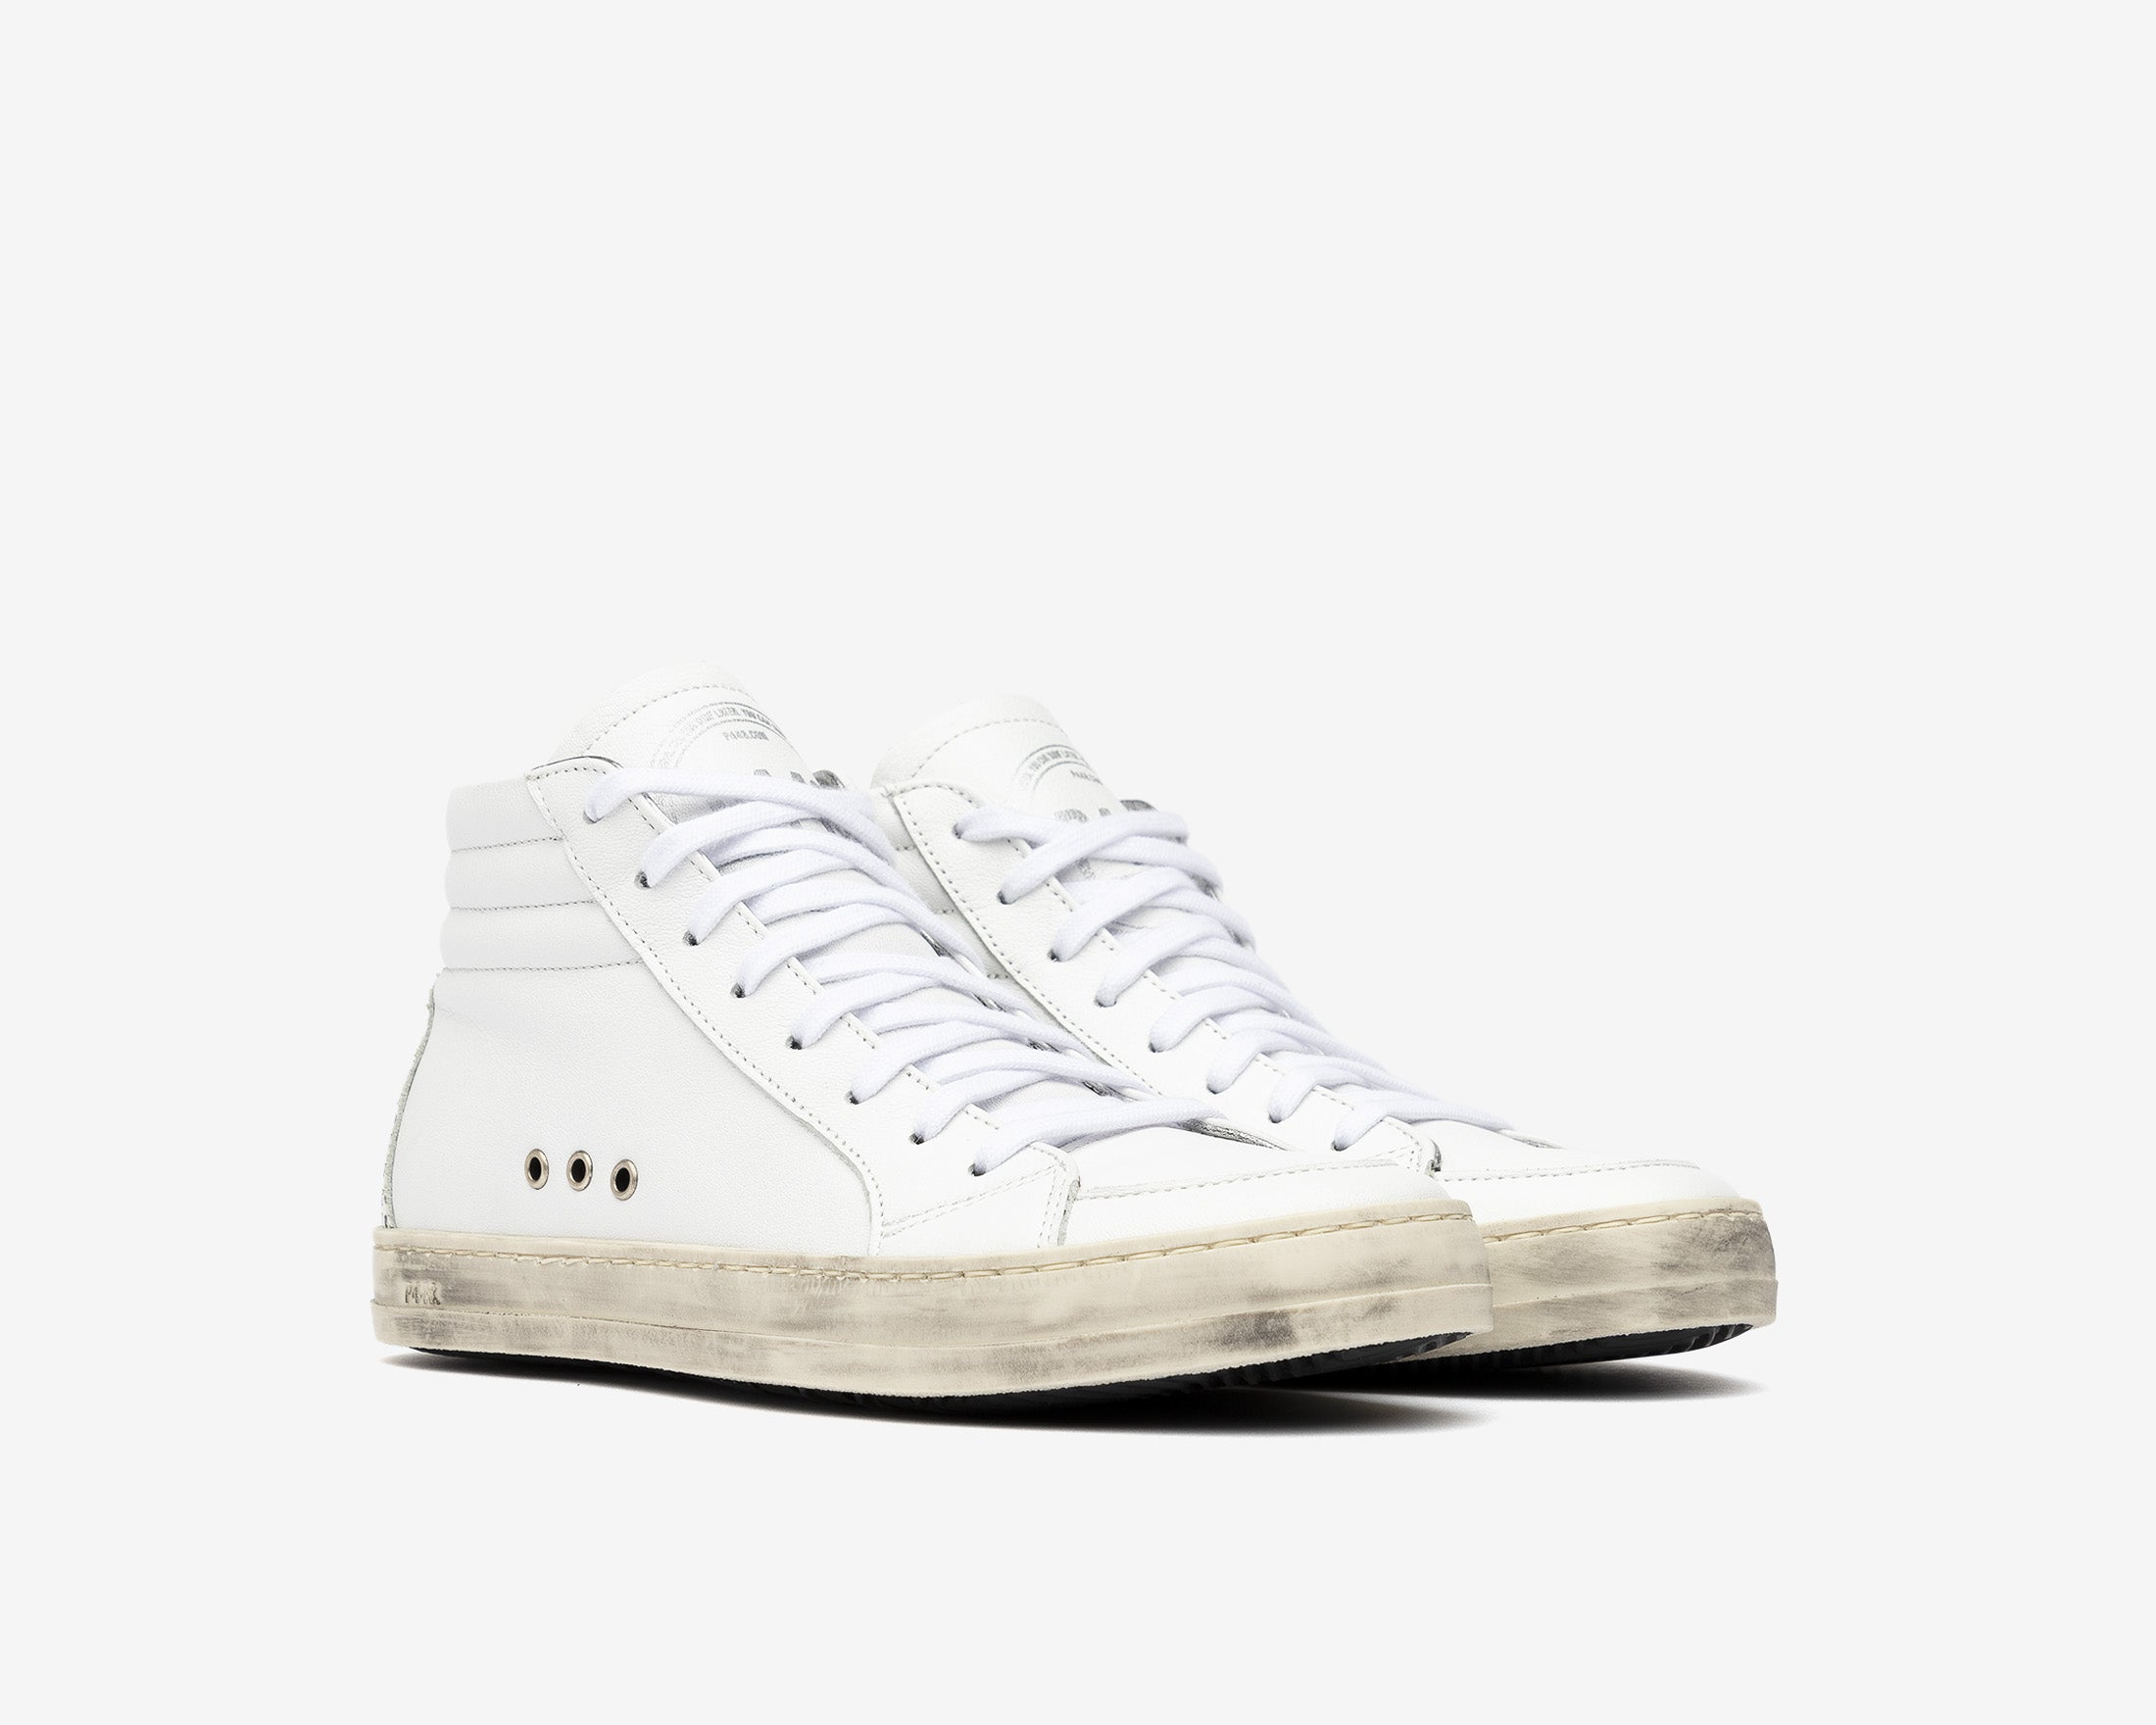 Skate High-Top Sneaker in White Gravel - Side